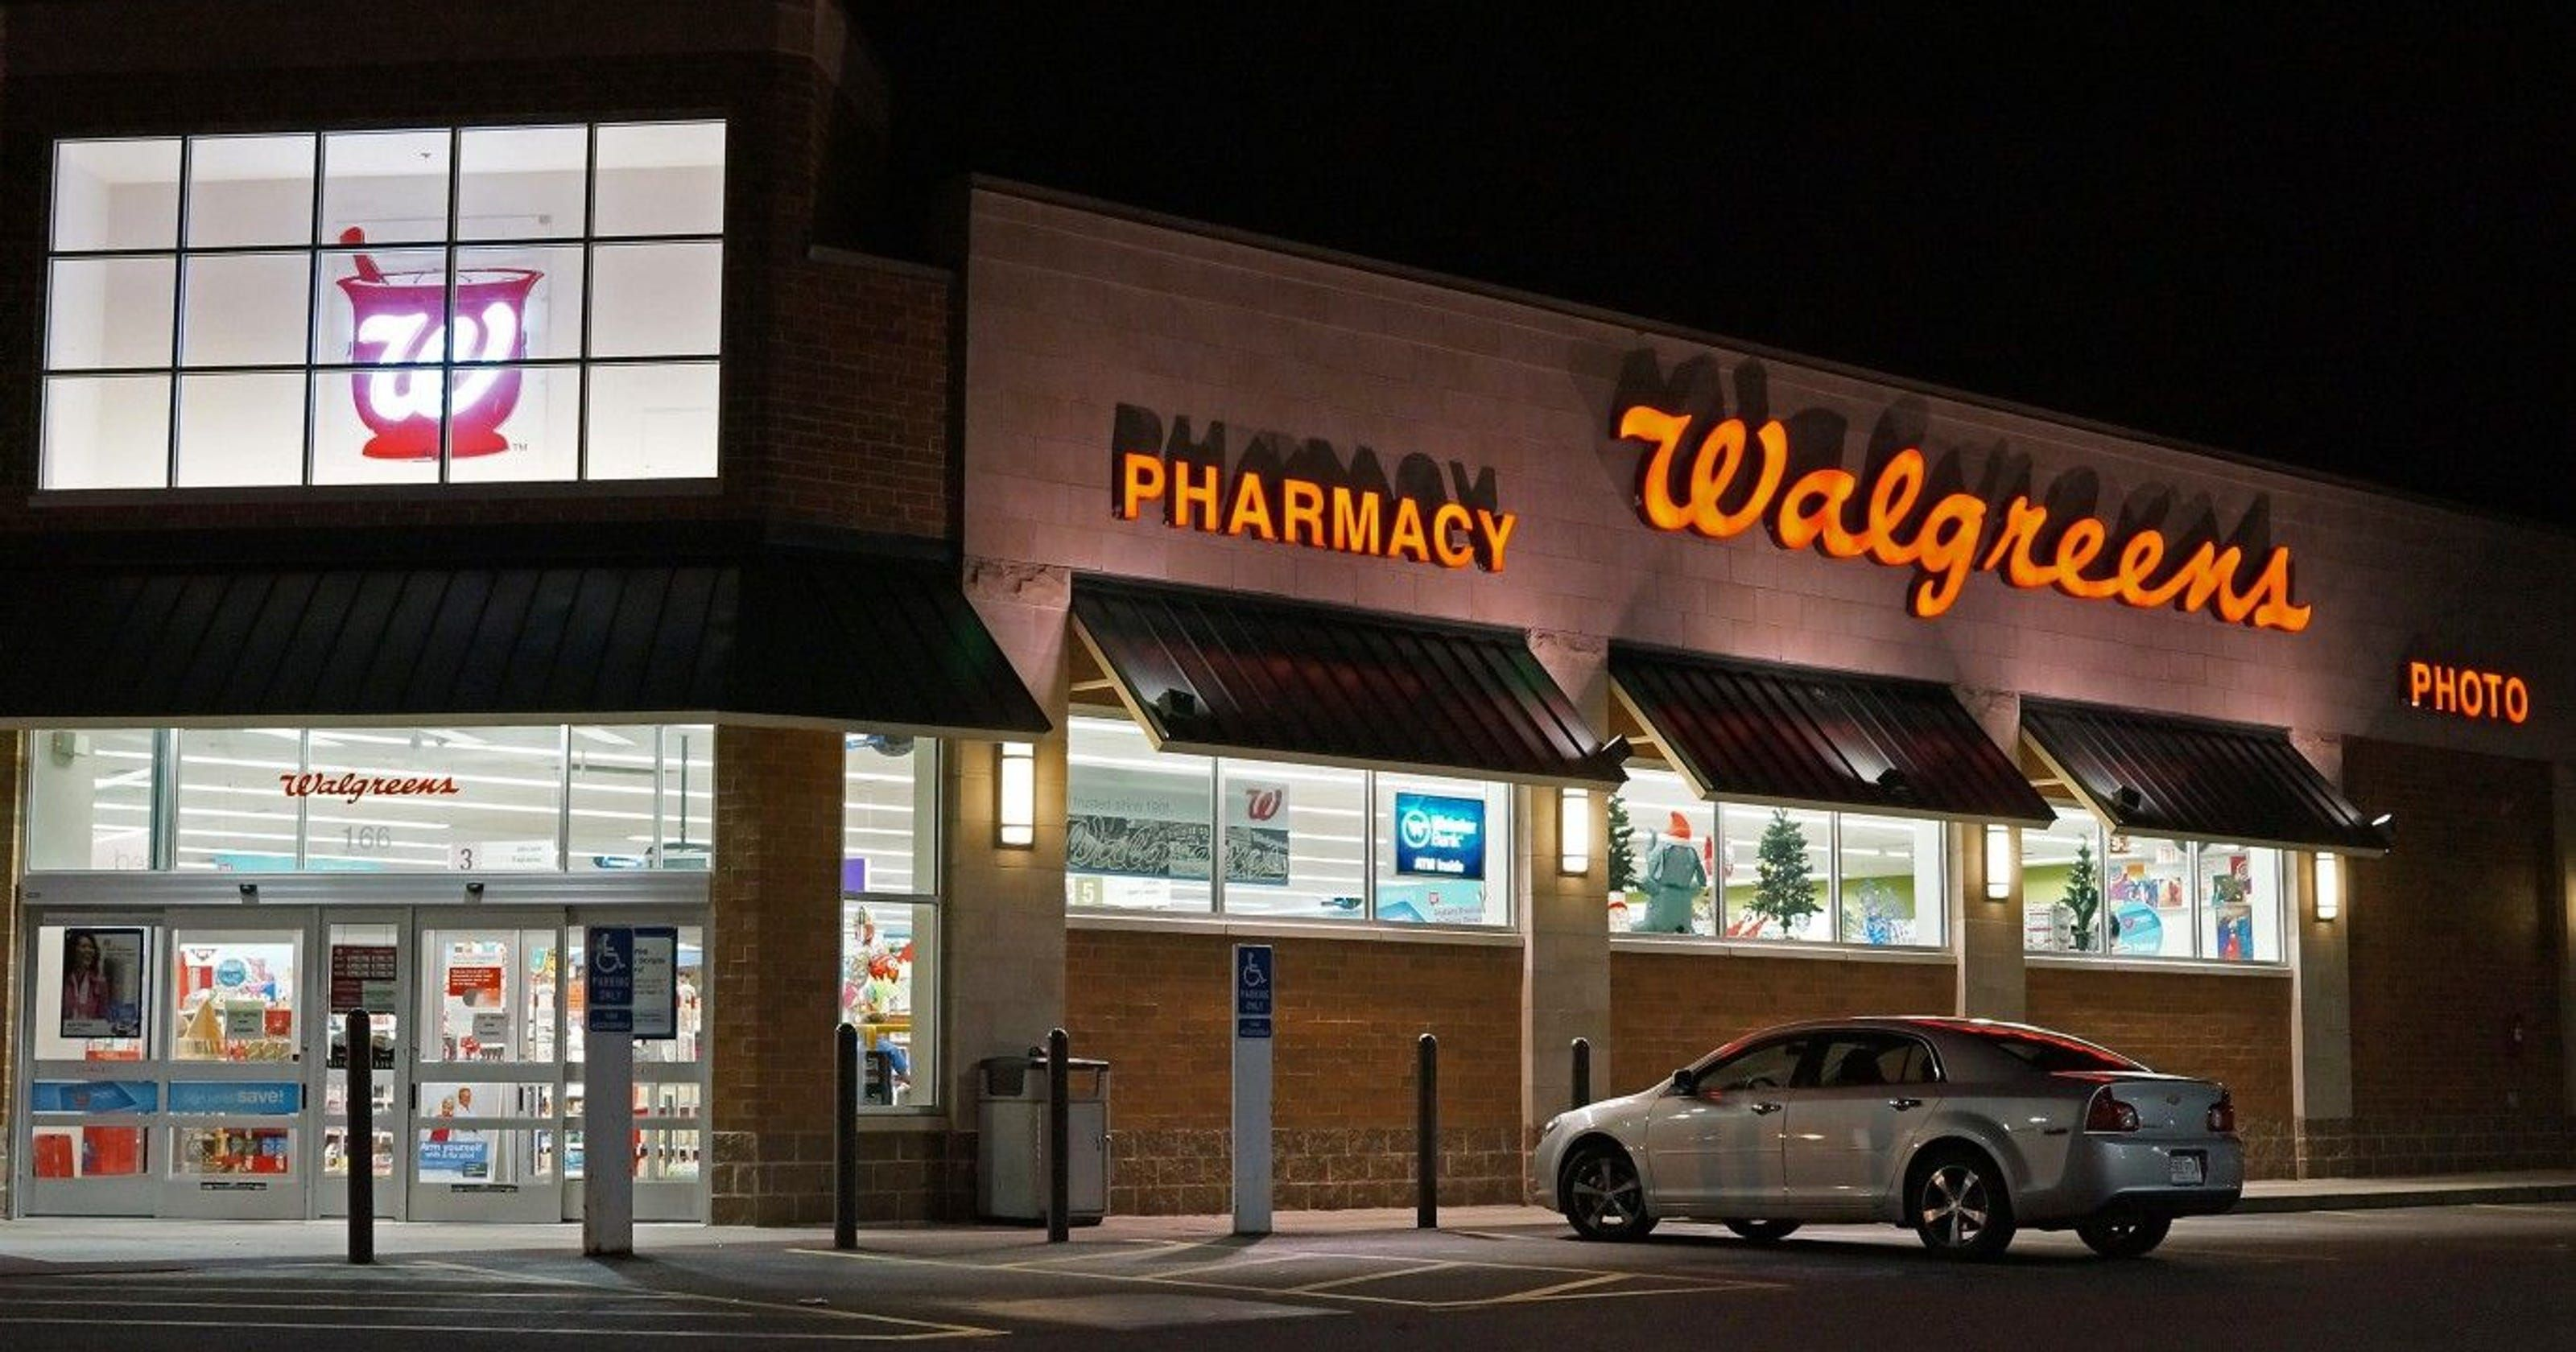 Walgreens plans to close 200 U.S. stores, according to new